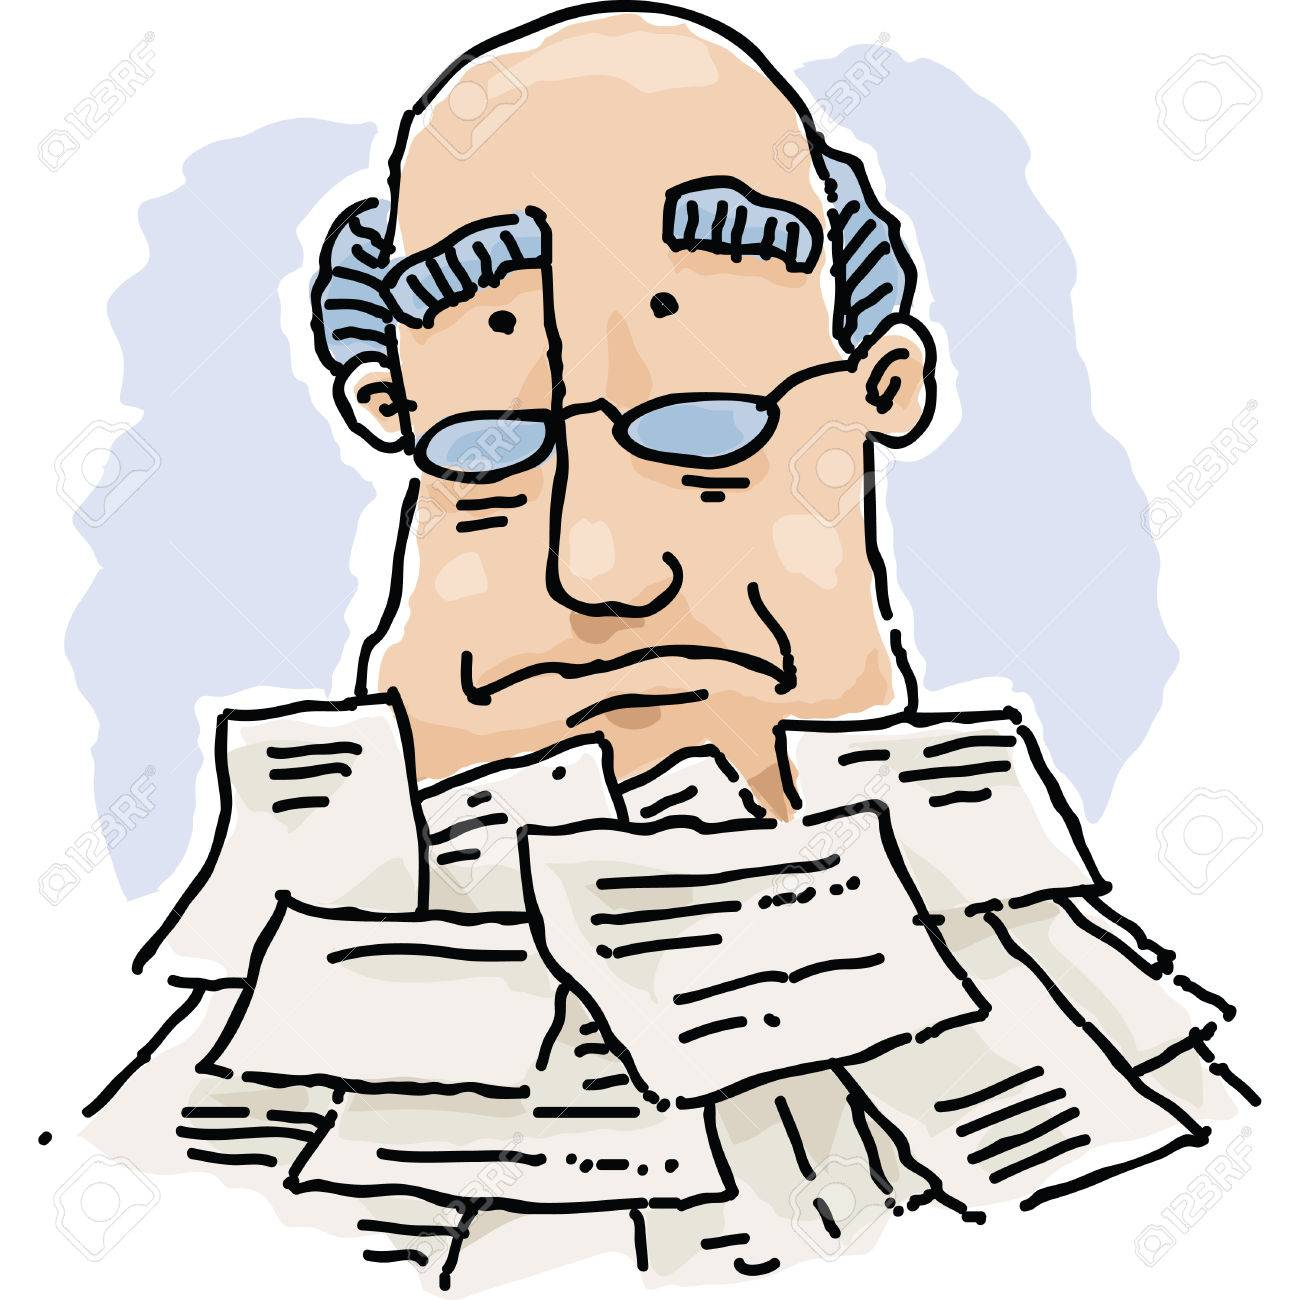 a cartoon man buried under a pile of paperwork. royalty free